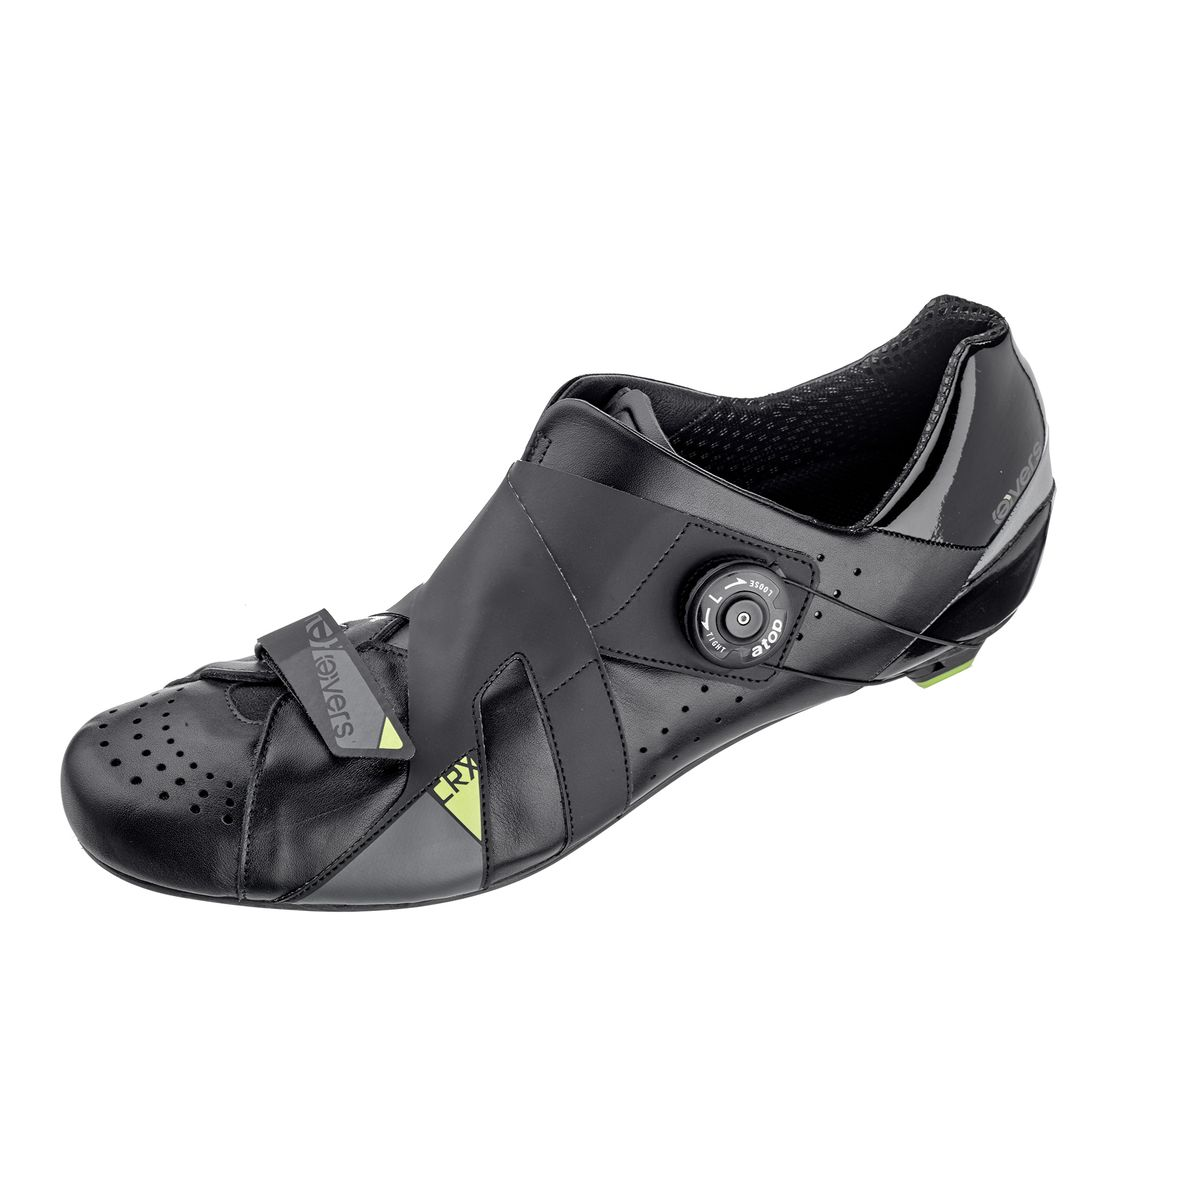 EVERS PRIMO road shoes | Sko